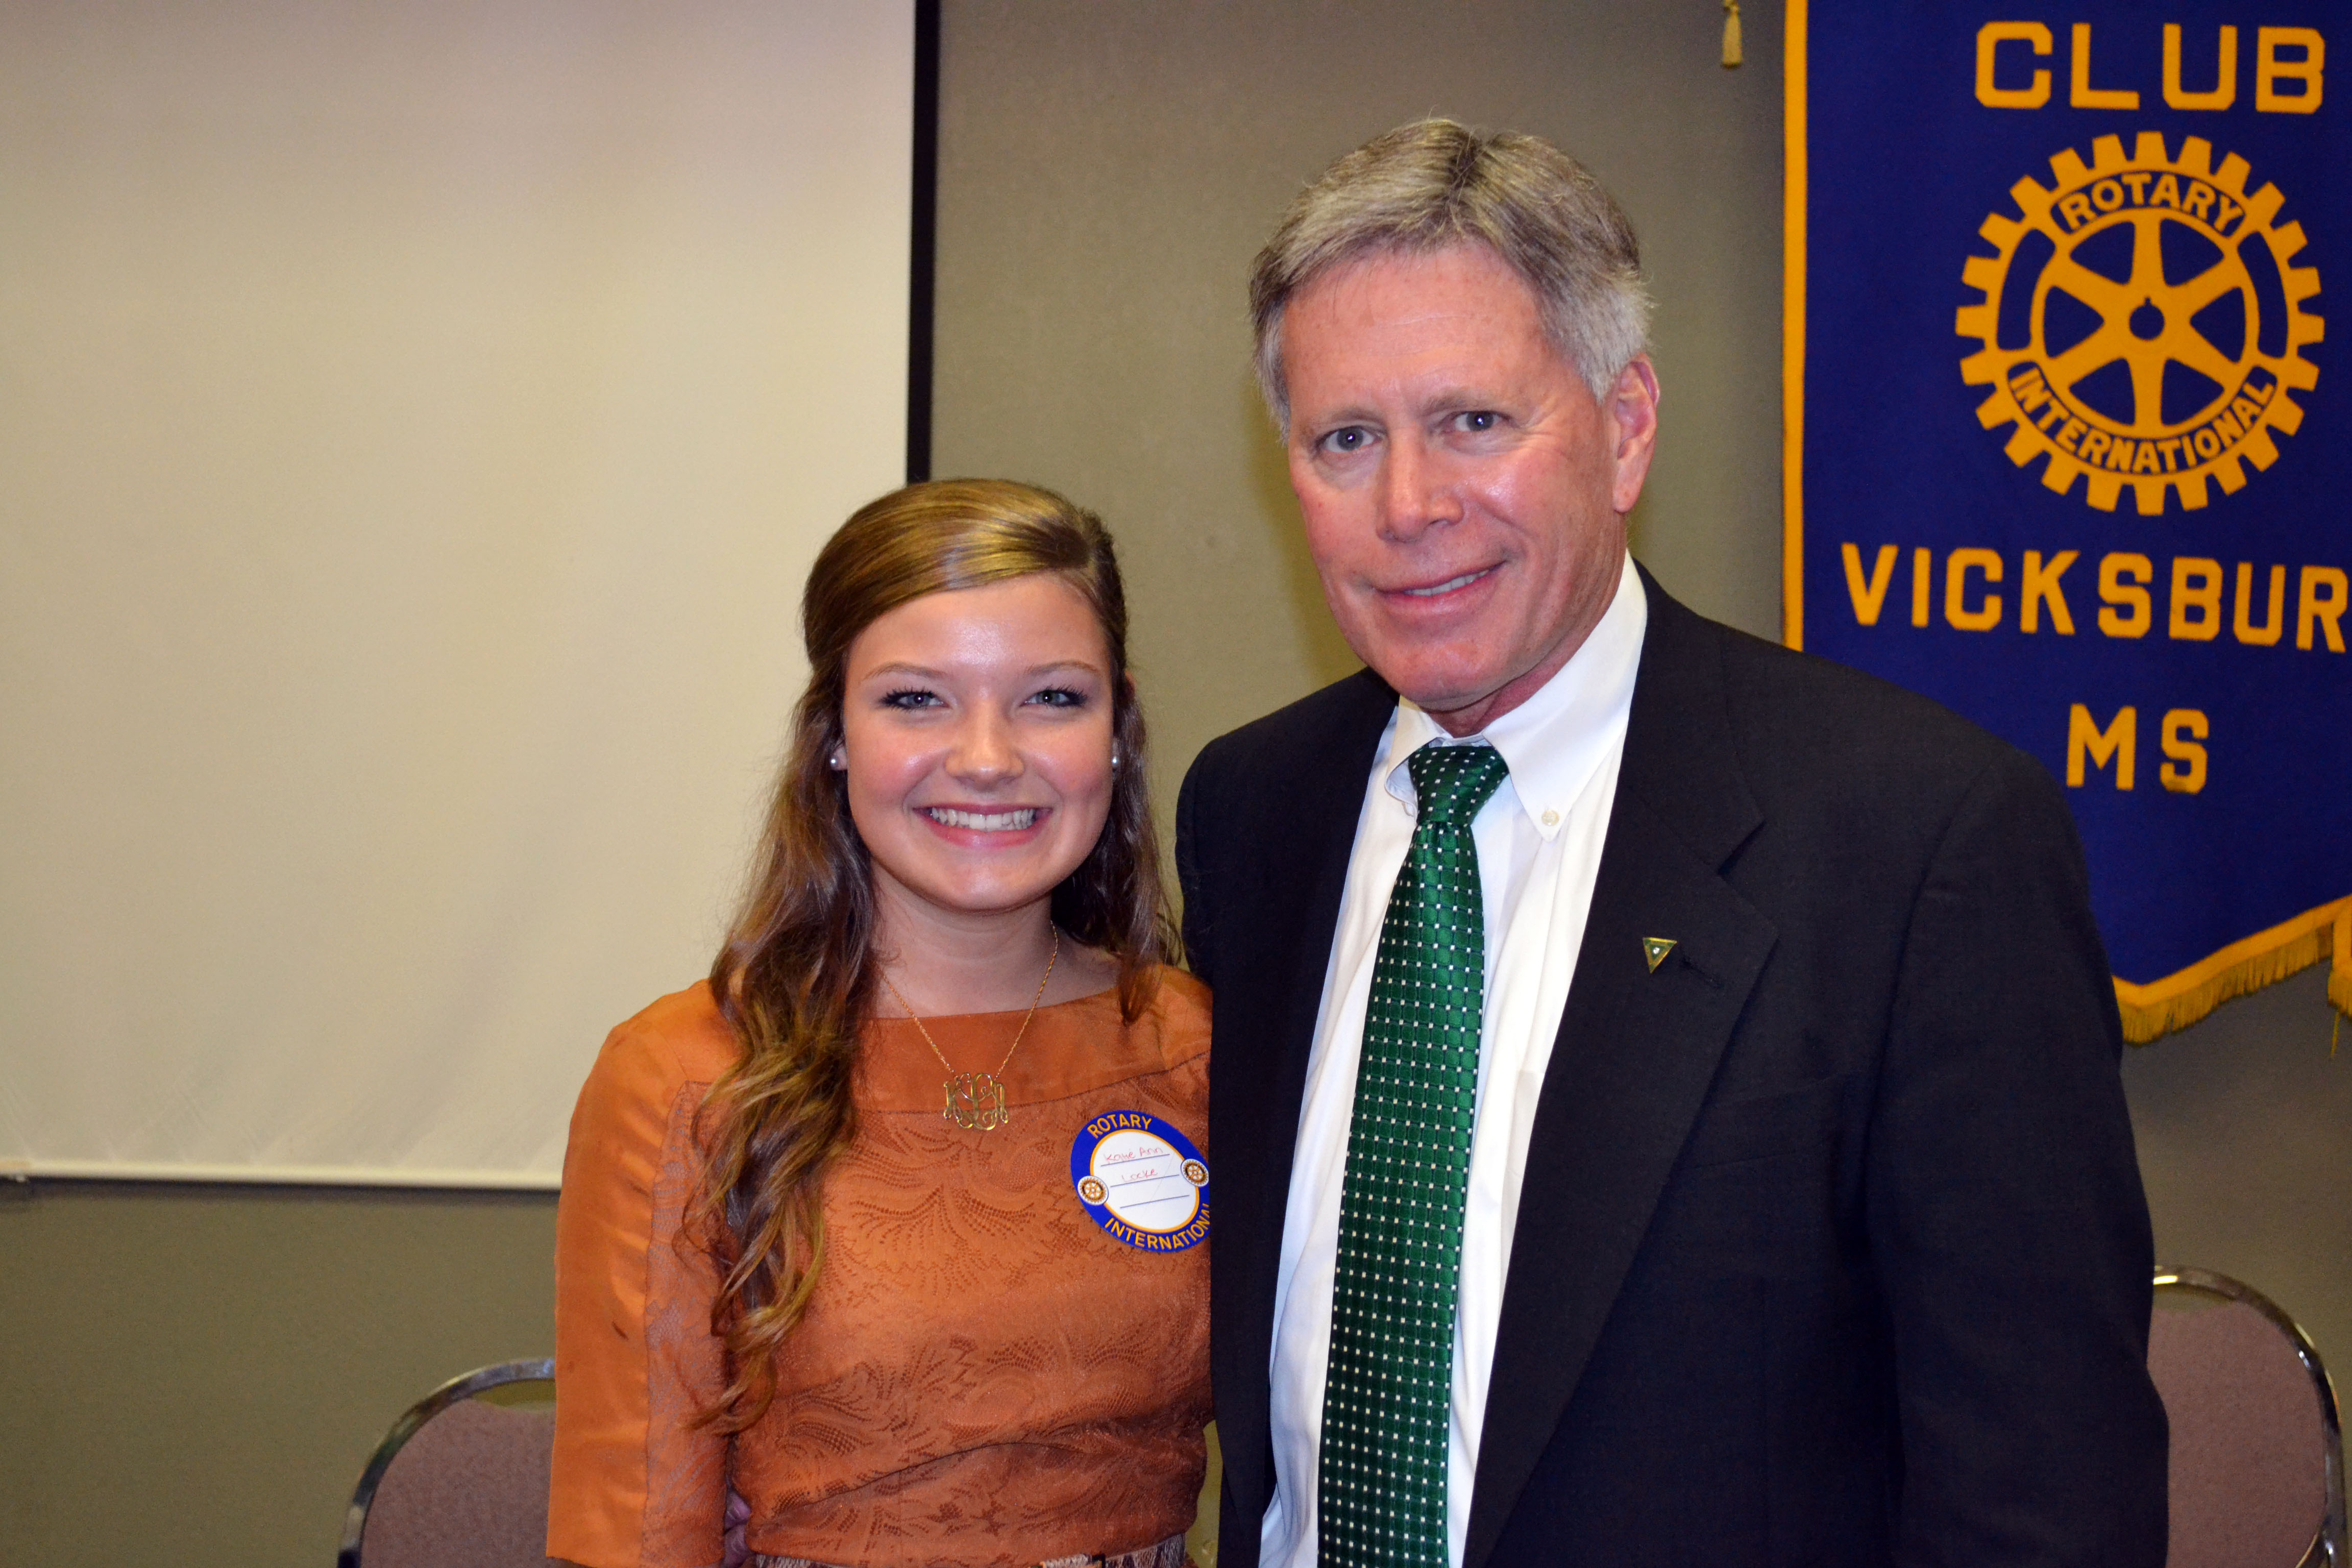 PHOTO: President LaForge meets incoming freshman Katie Ann Locke at Vicksburg Rotary Club.